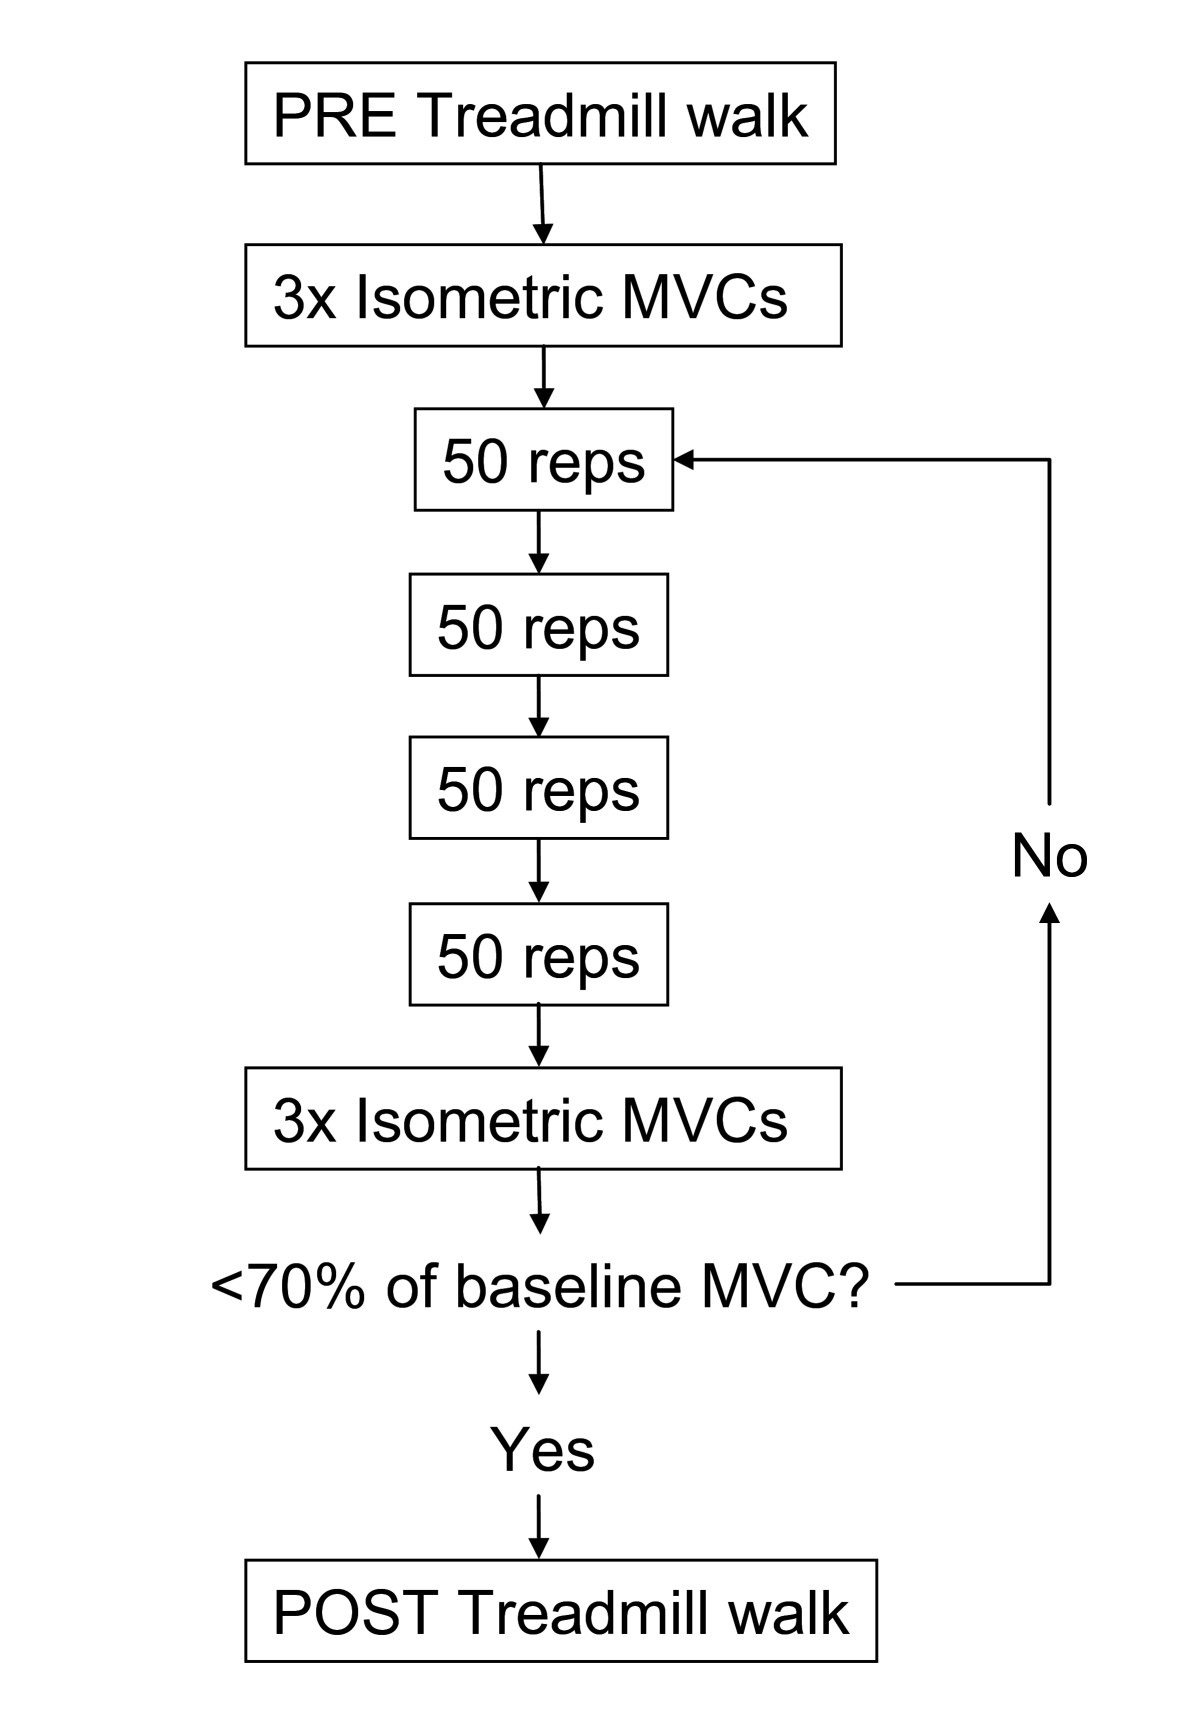 http://static-content.springer.com/image/art%3A10.1186%2F1757-1146-3-6/MediaObjects/13047_2010_Article_117_Fig2_HTML.jpg